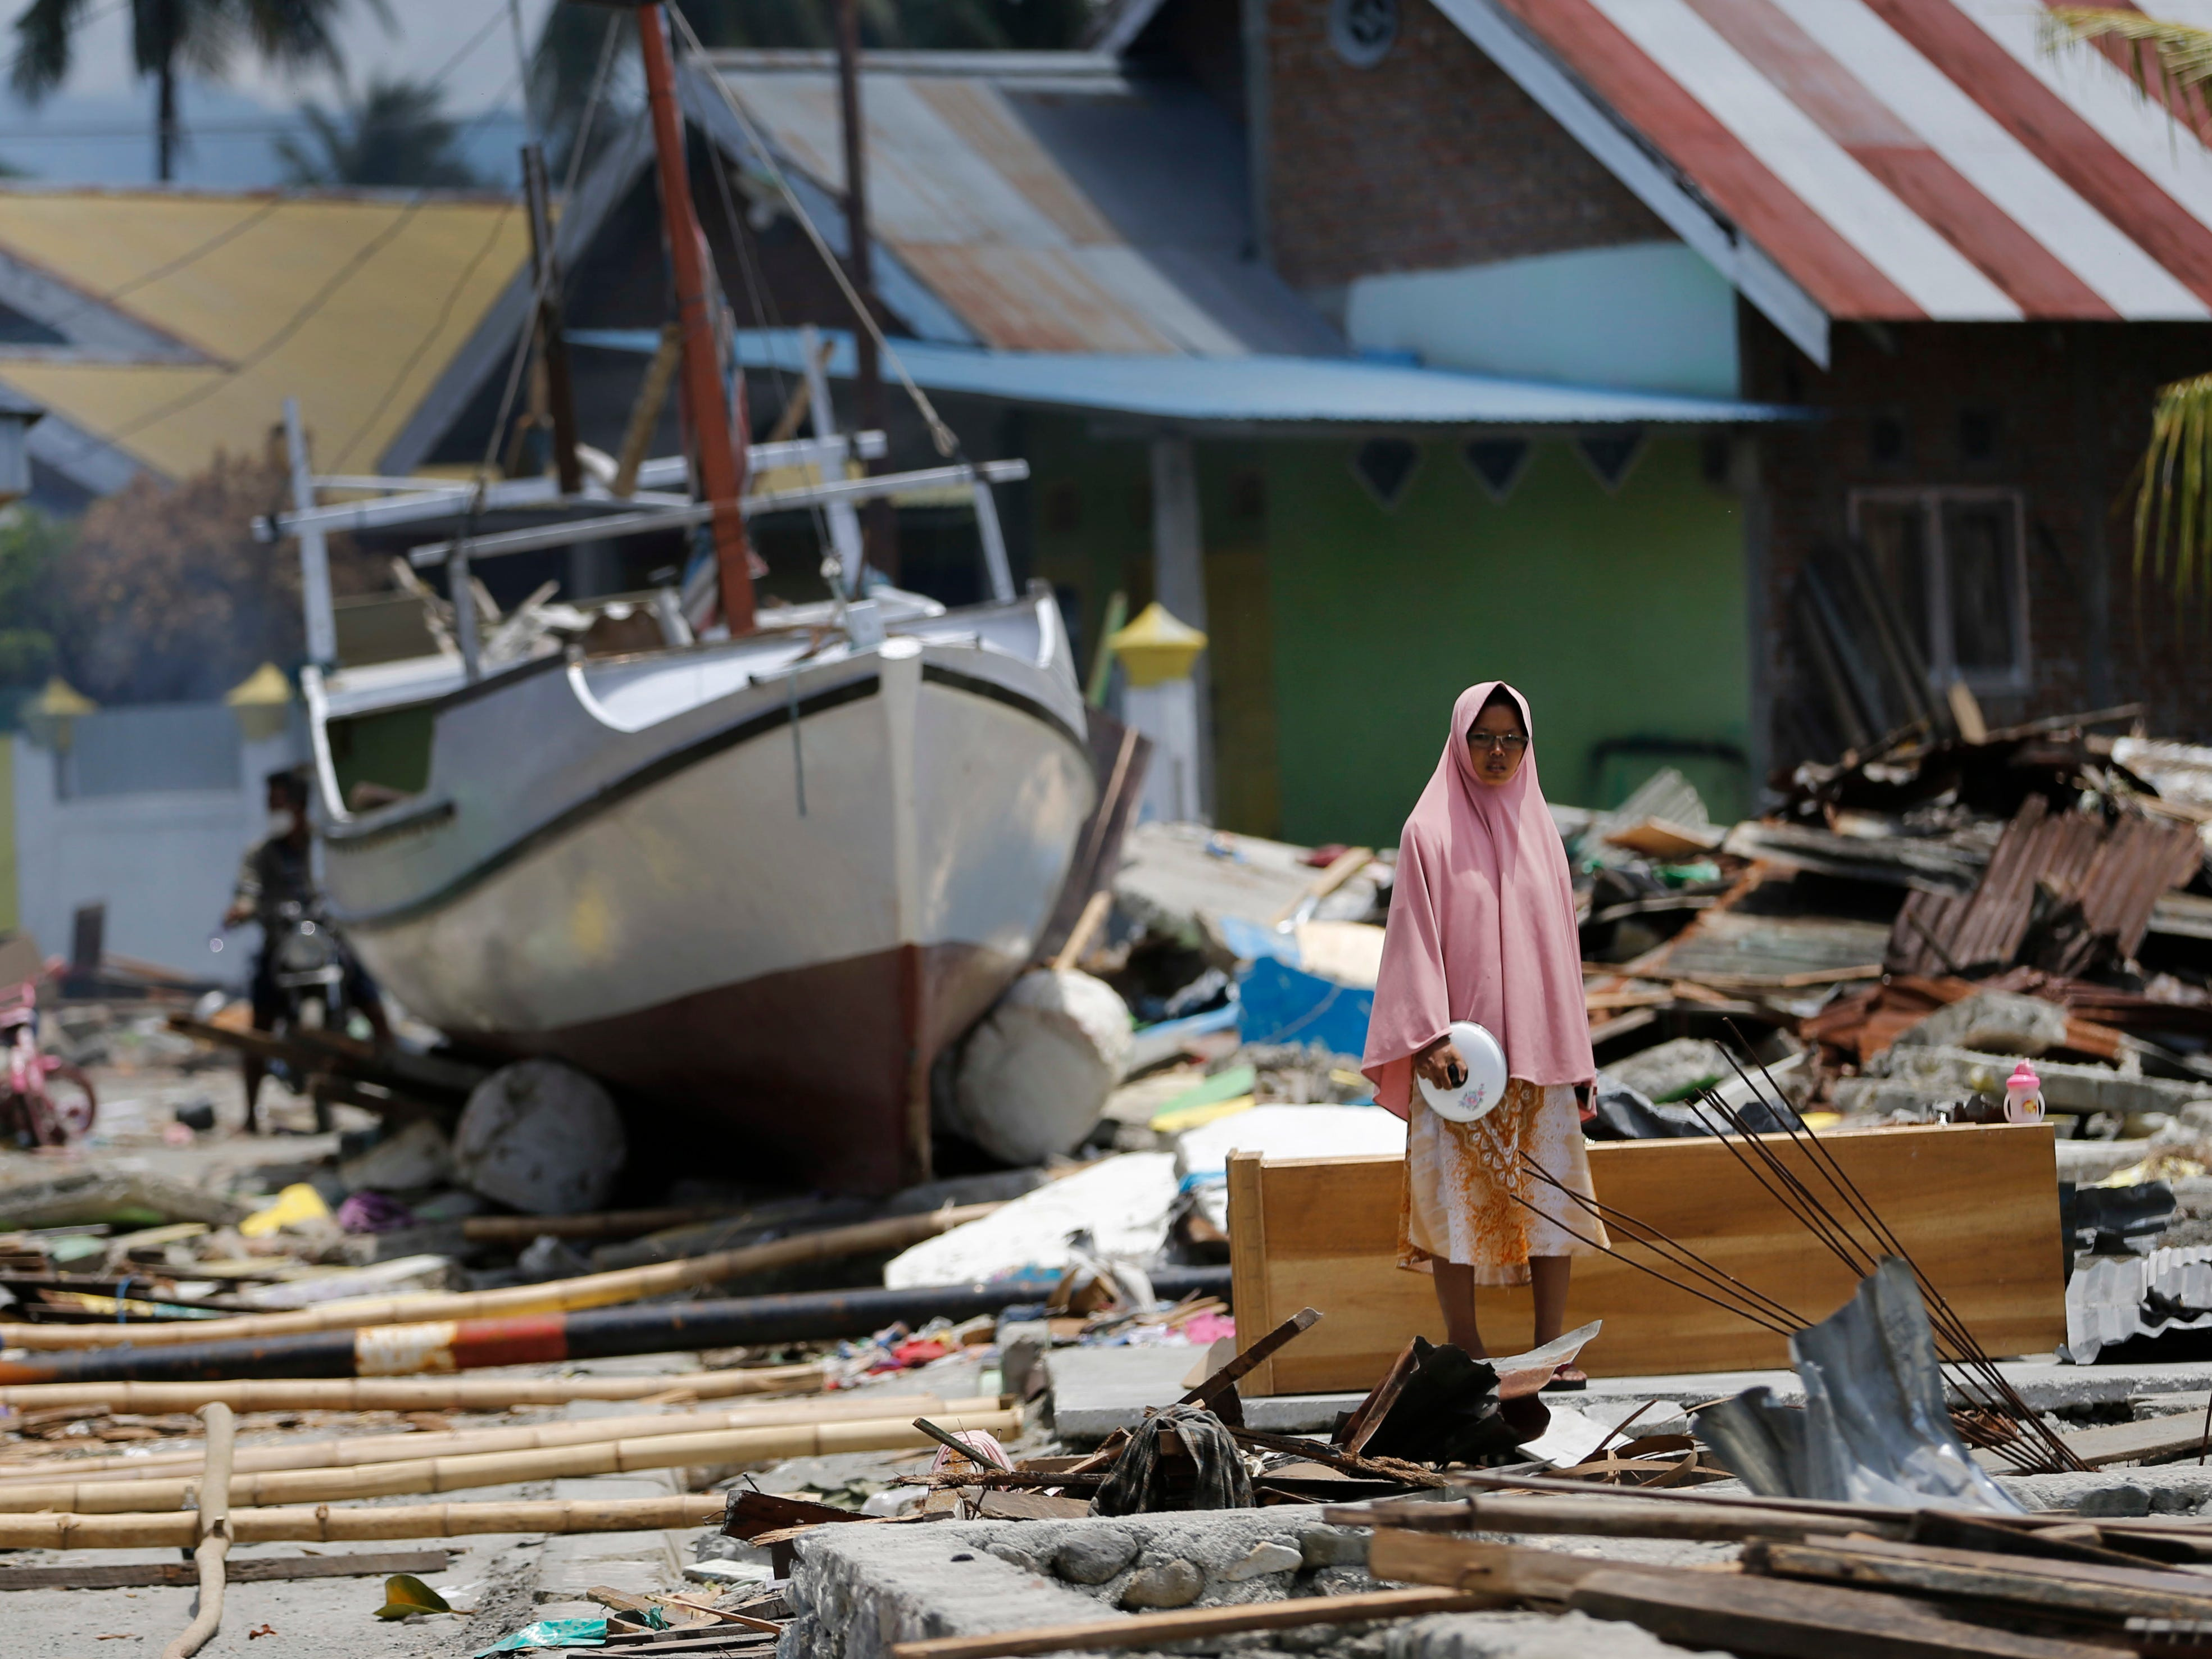 A woman stands in the rubble of houses as a boat swept ashore by tsunami rests on the ground in the background in Wani village on the outskirt of Palu, Central Sulawesi, Indonesia, Wednesday, Oct. 10, 2018. A 7.5 magnitude earthquake rocked Central Sulawesi province on Sept. 28, triggering a tsunami and mudslides that killed a large number of people and displaced tens of thousands of others.